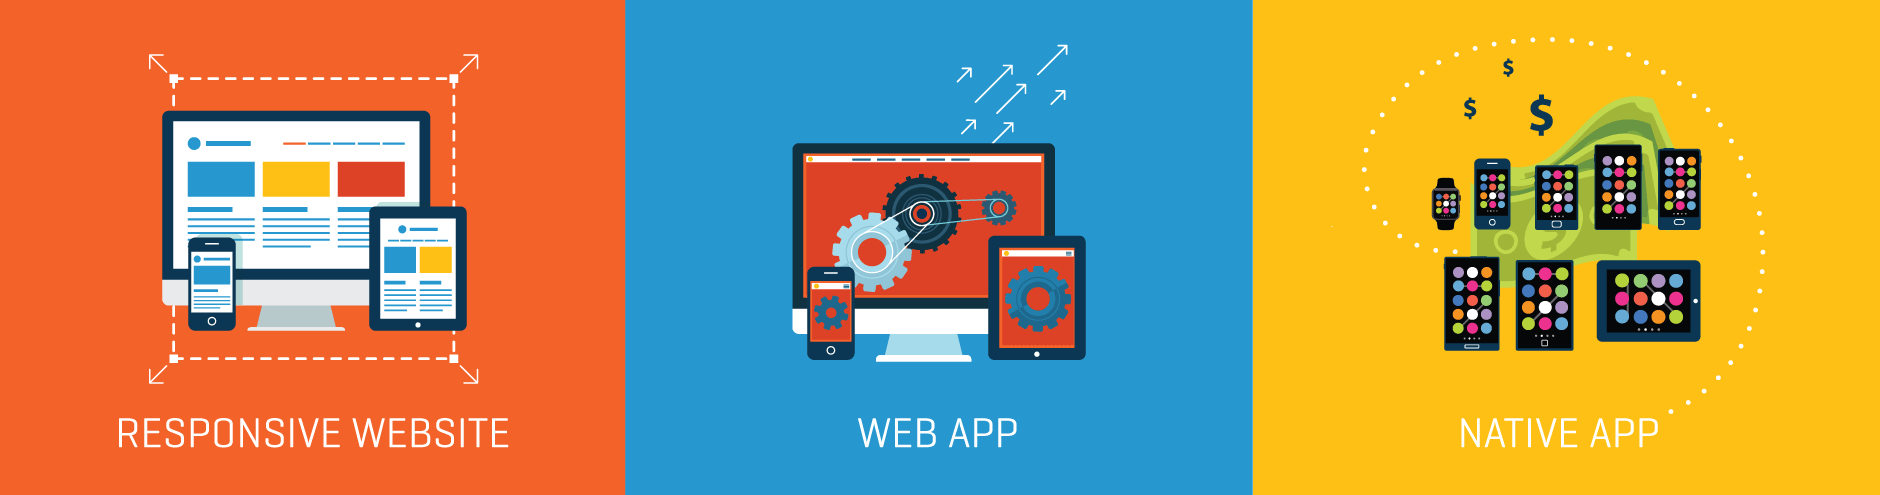 responsive web vs. web app vs. native app